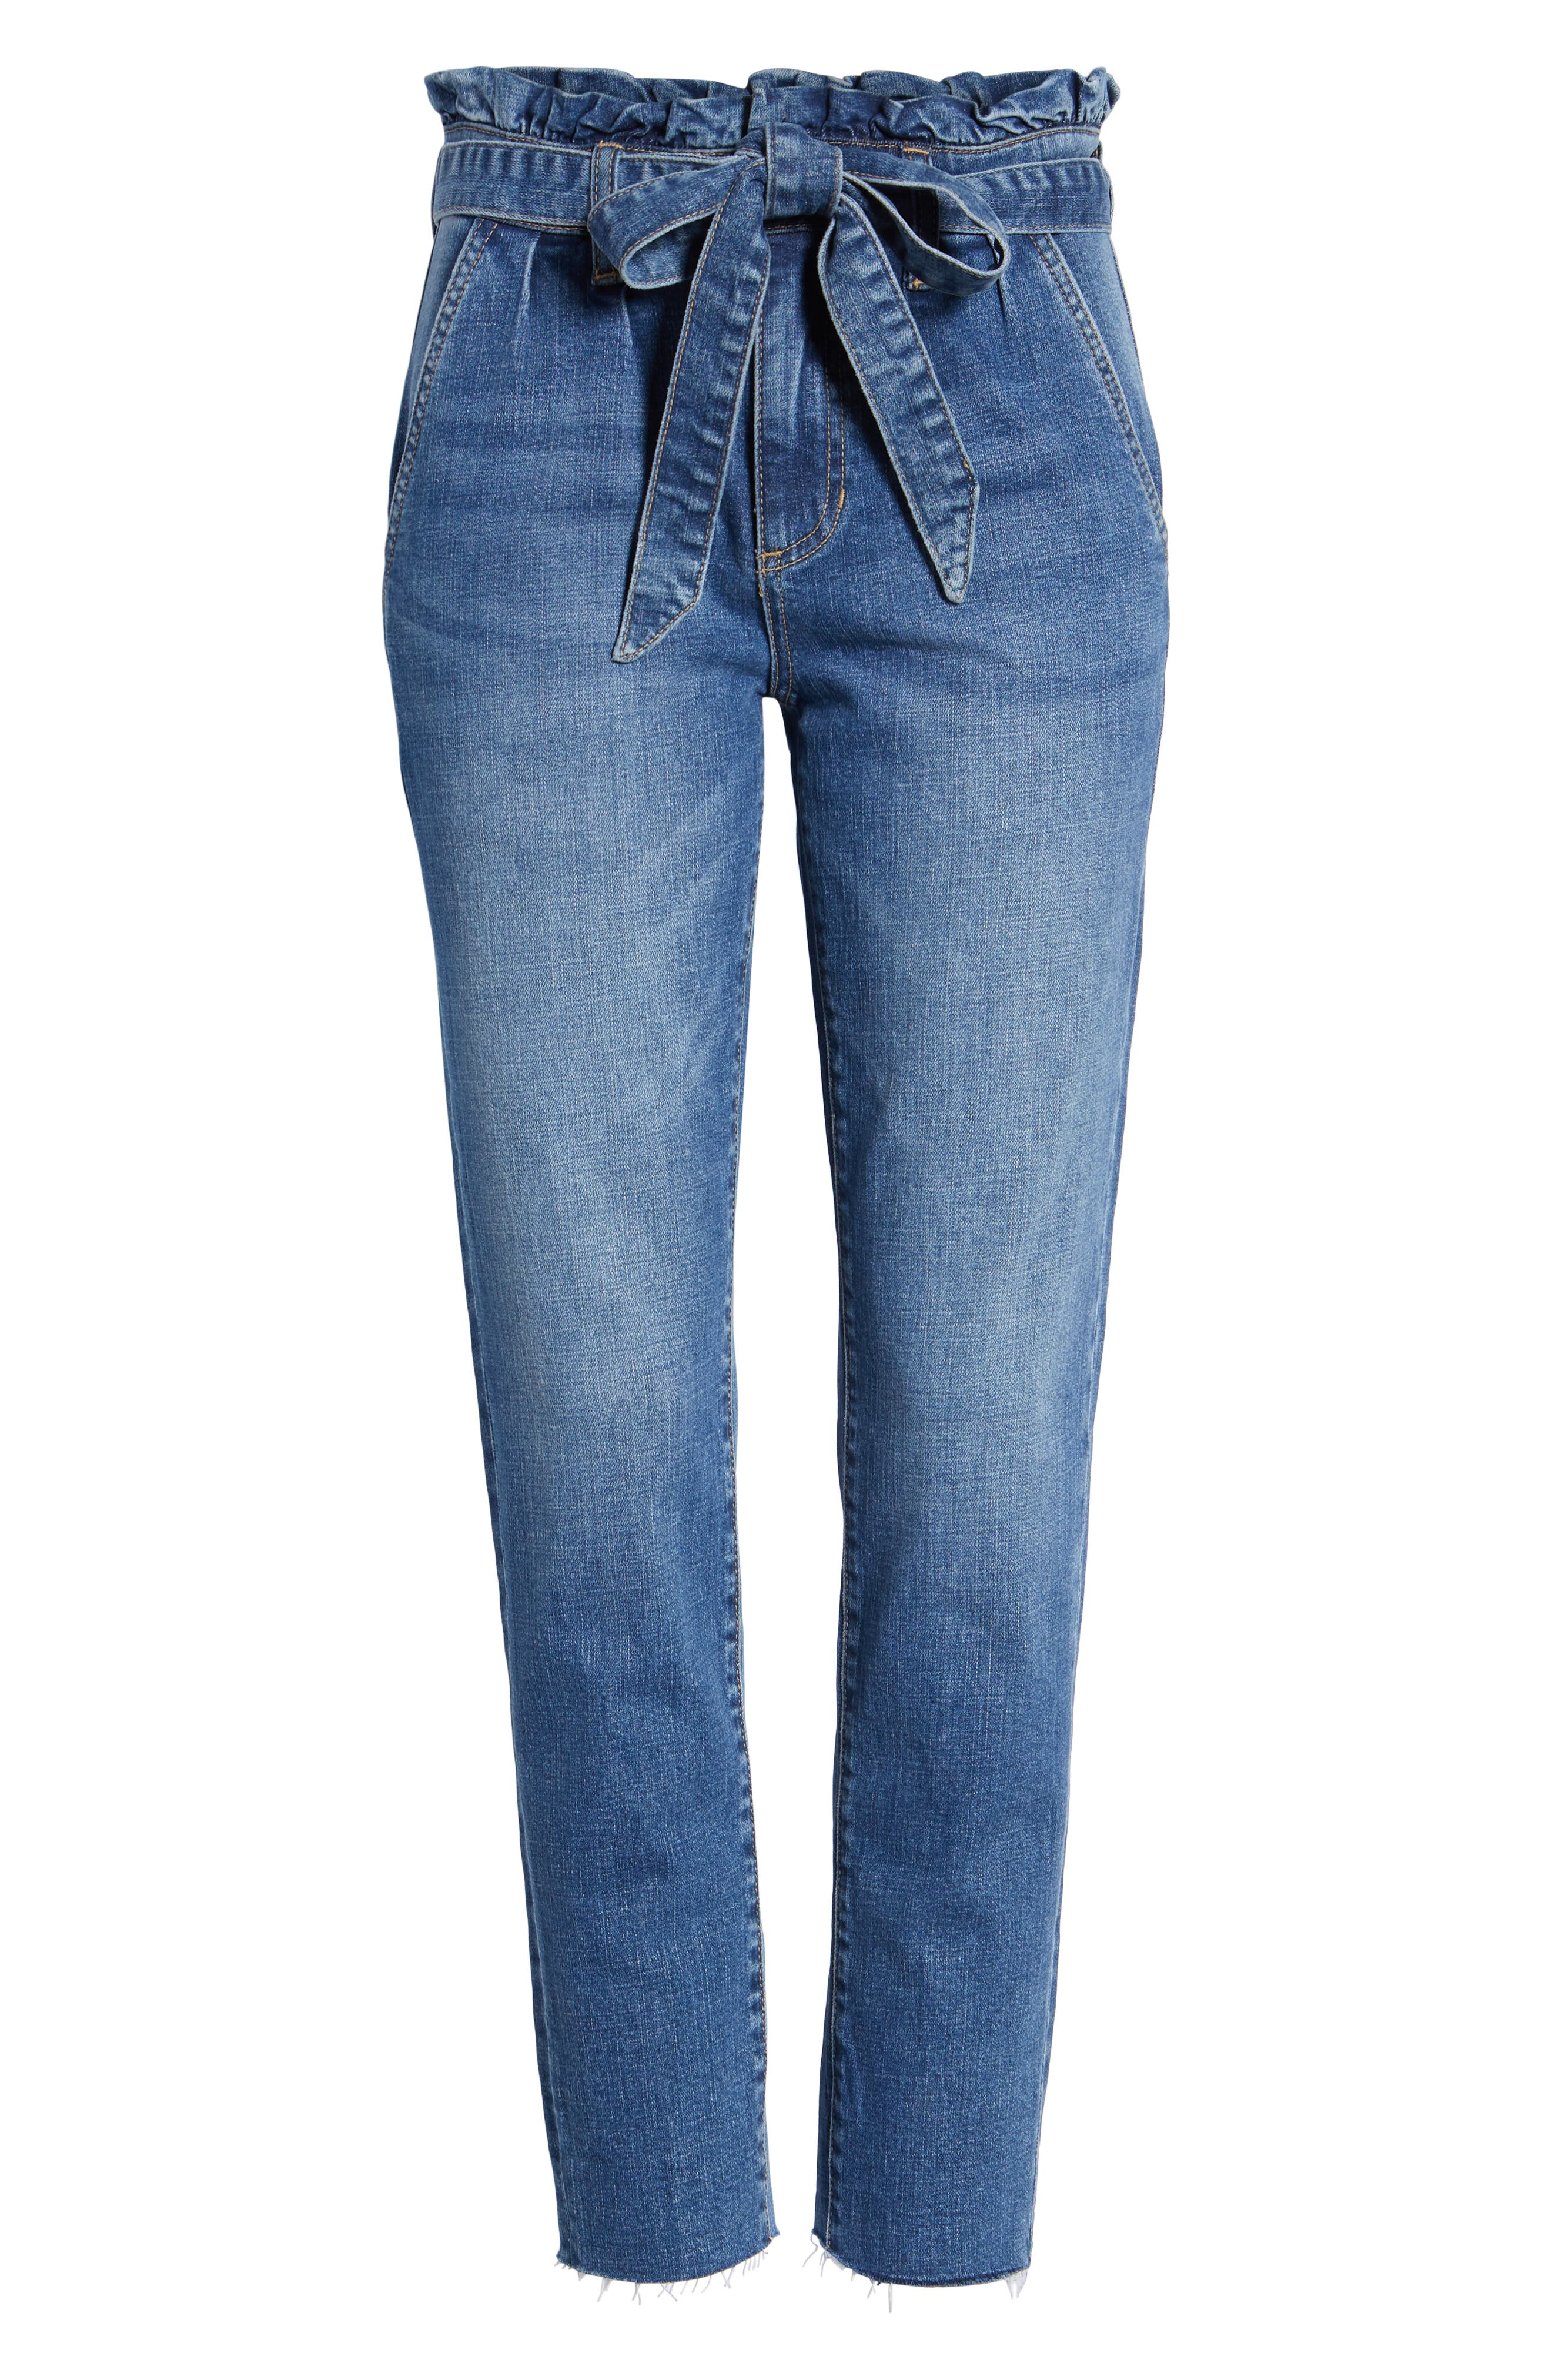 Paperbag Waist Skinny Jeans,                             Alternate thumbnail 7, color,                             Pretty